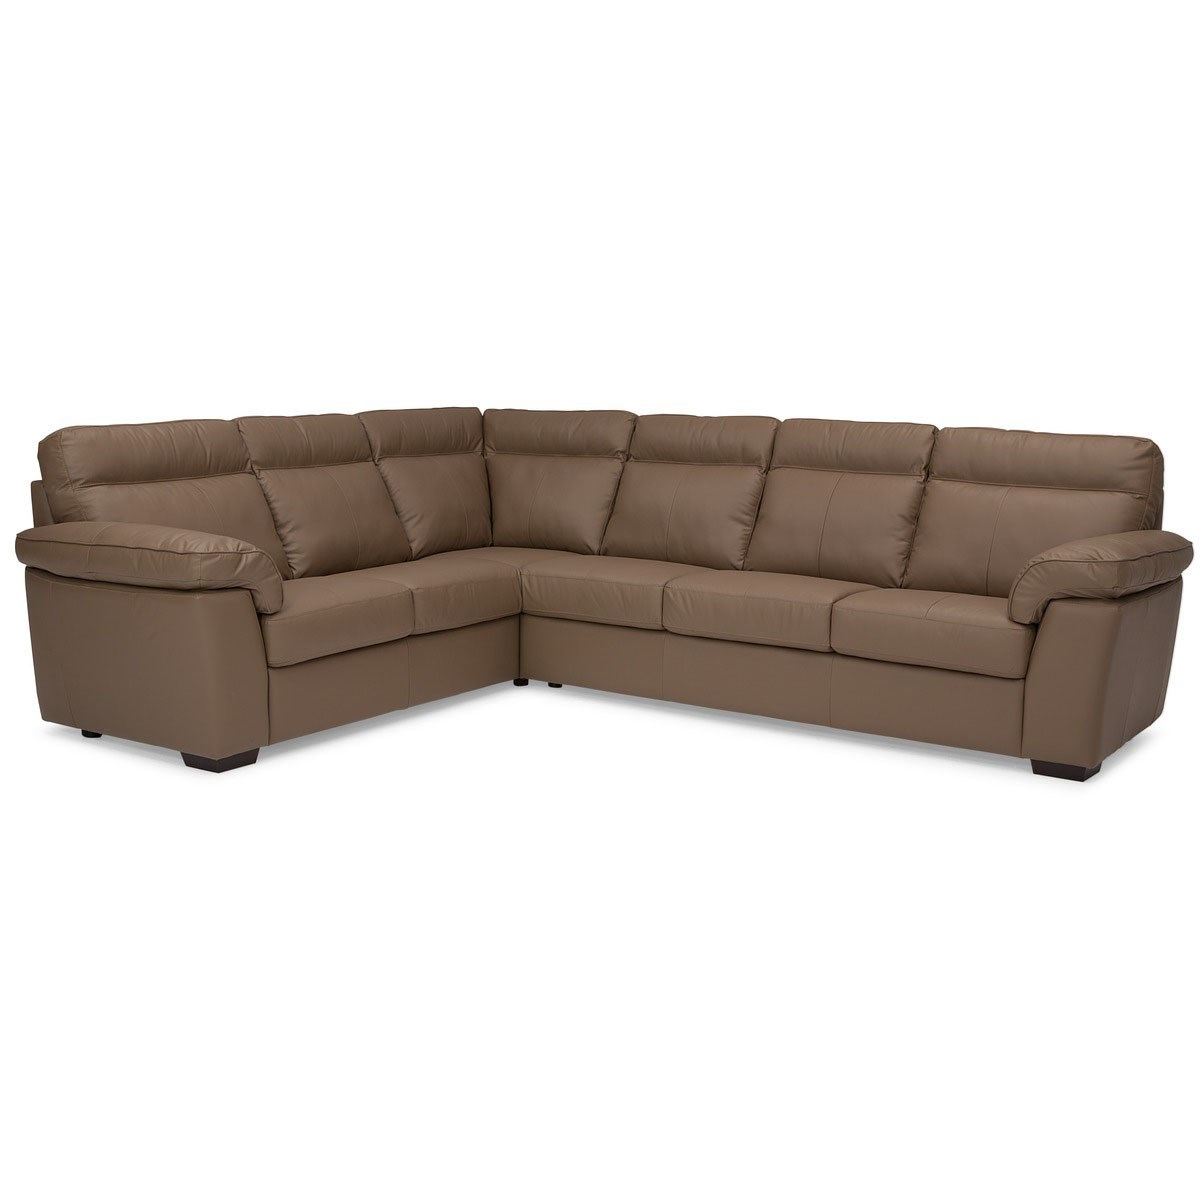 Palliser Kingston Casual 2 Piece Sectional With Right Hand